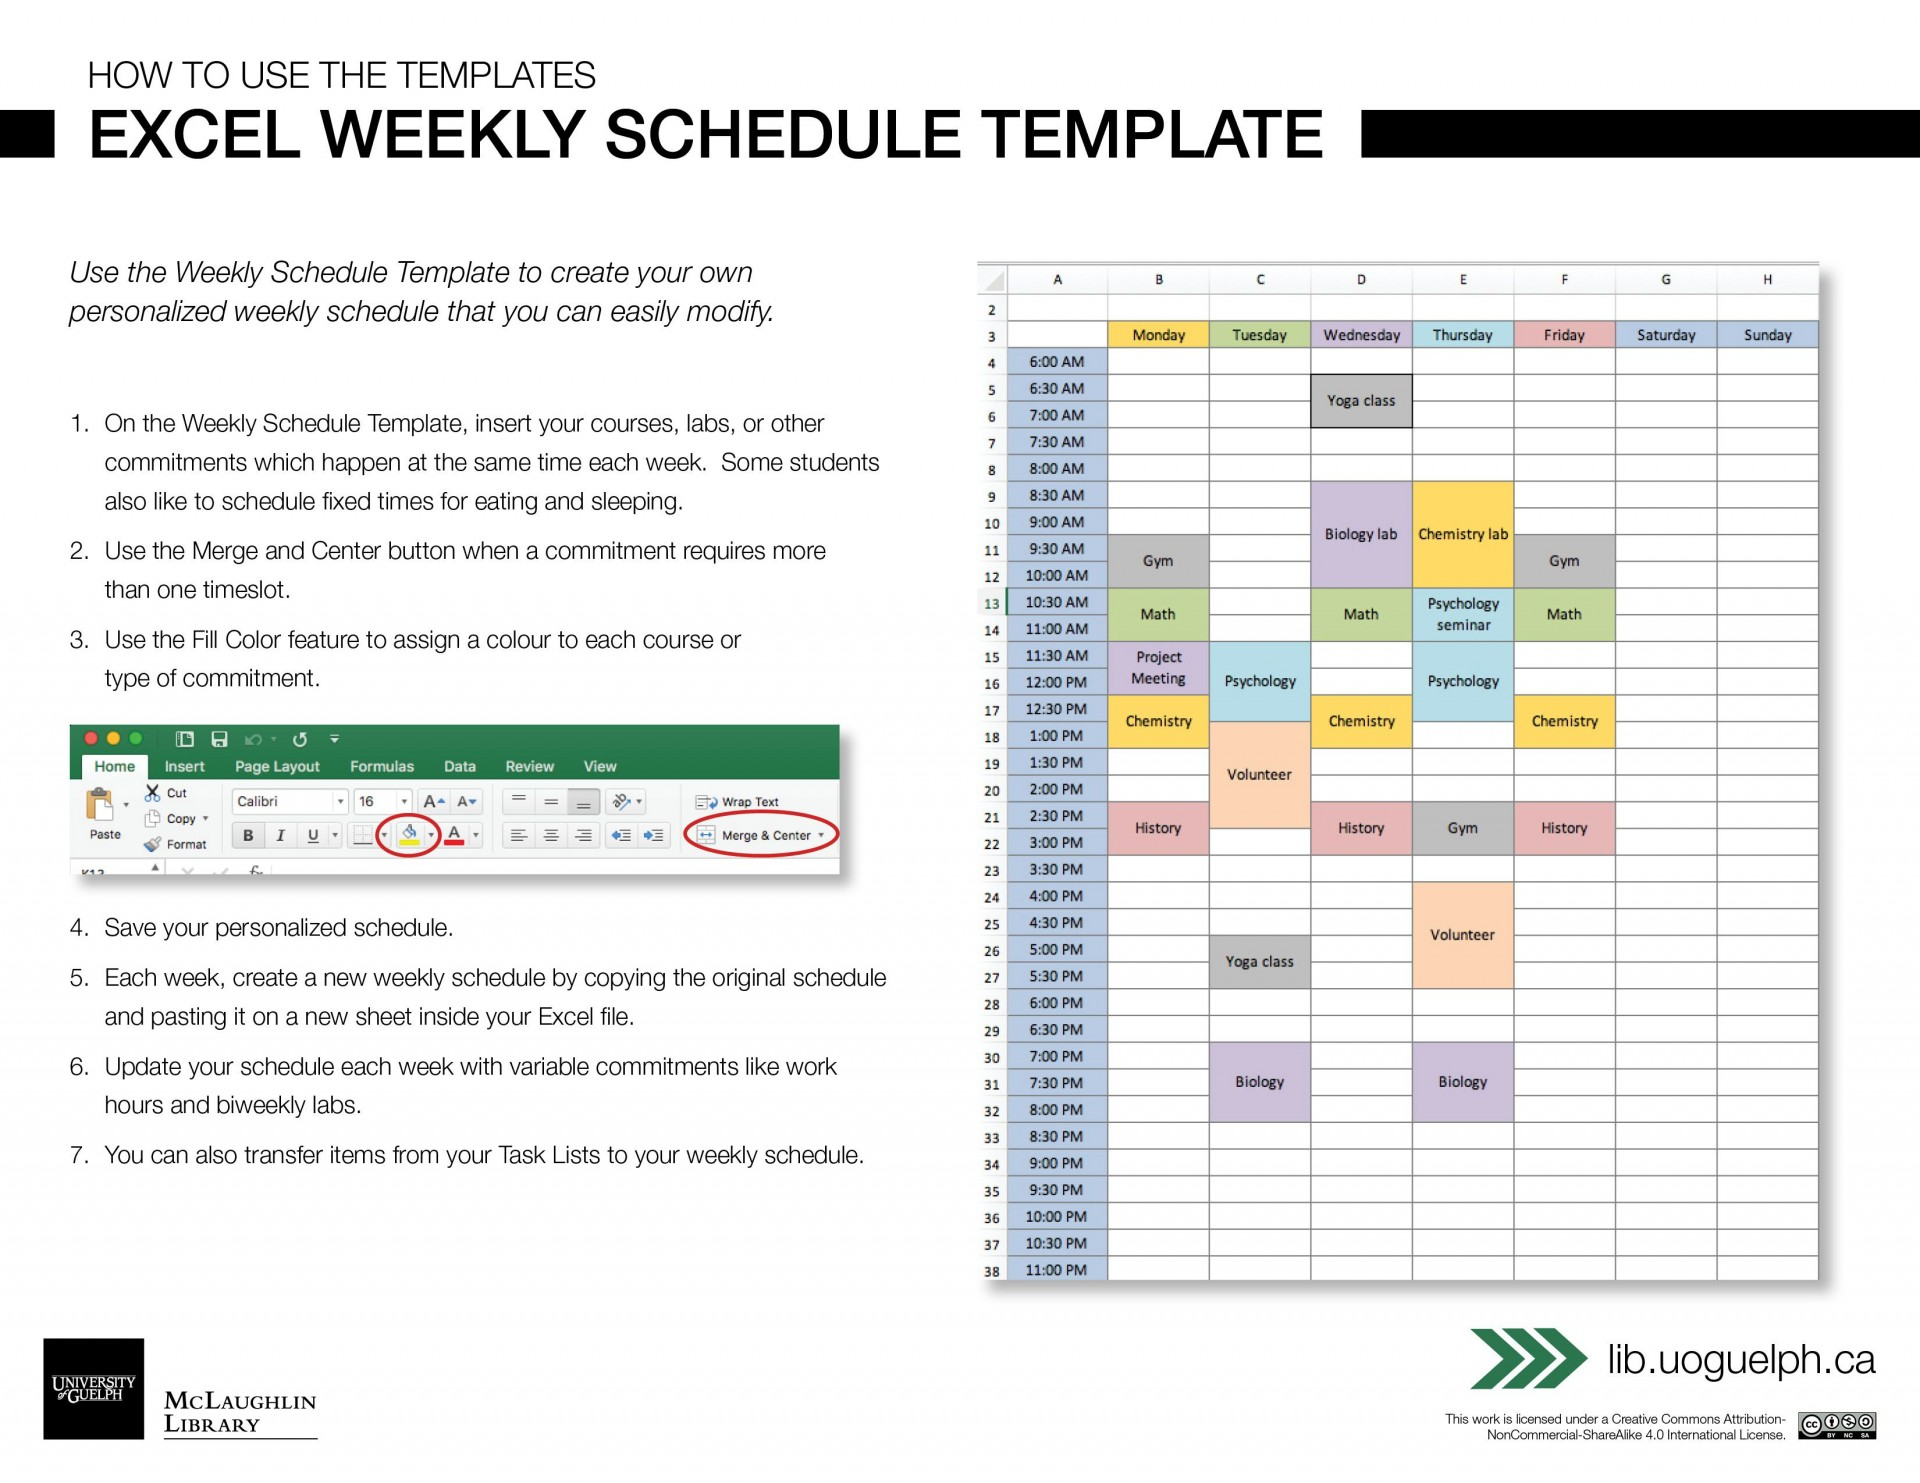 003 Outstanding Excel Weekly Timetable Template High Definition  Planner 2020 Meal 20191920